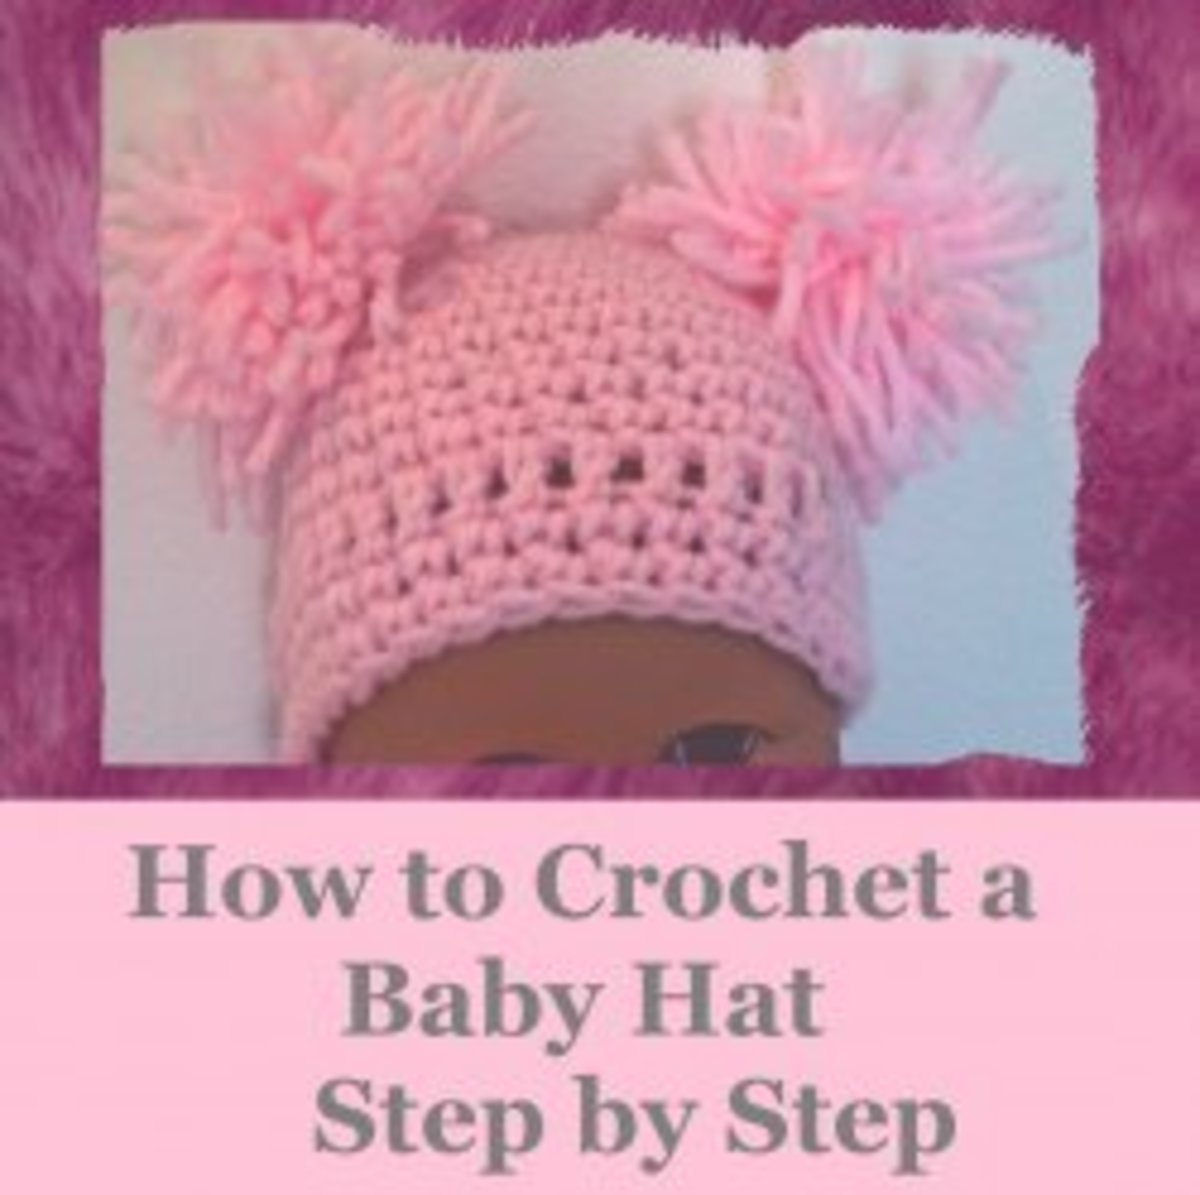 Beginner Crochet Patterns Step By Step : How To Crochet A Baby Hat Ideal for Beginners {With Step ...